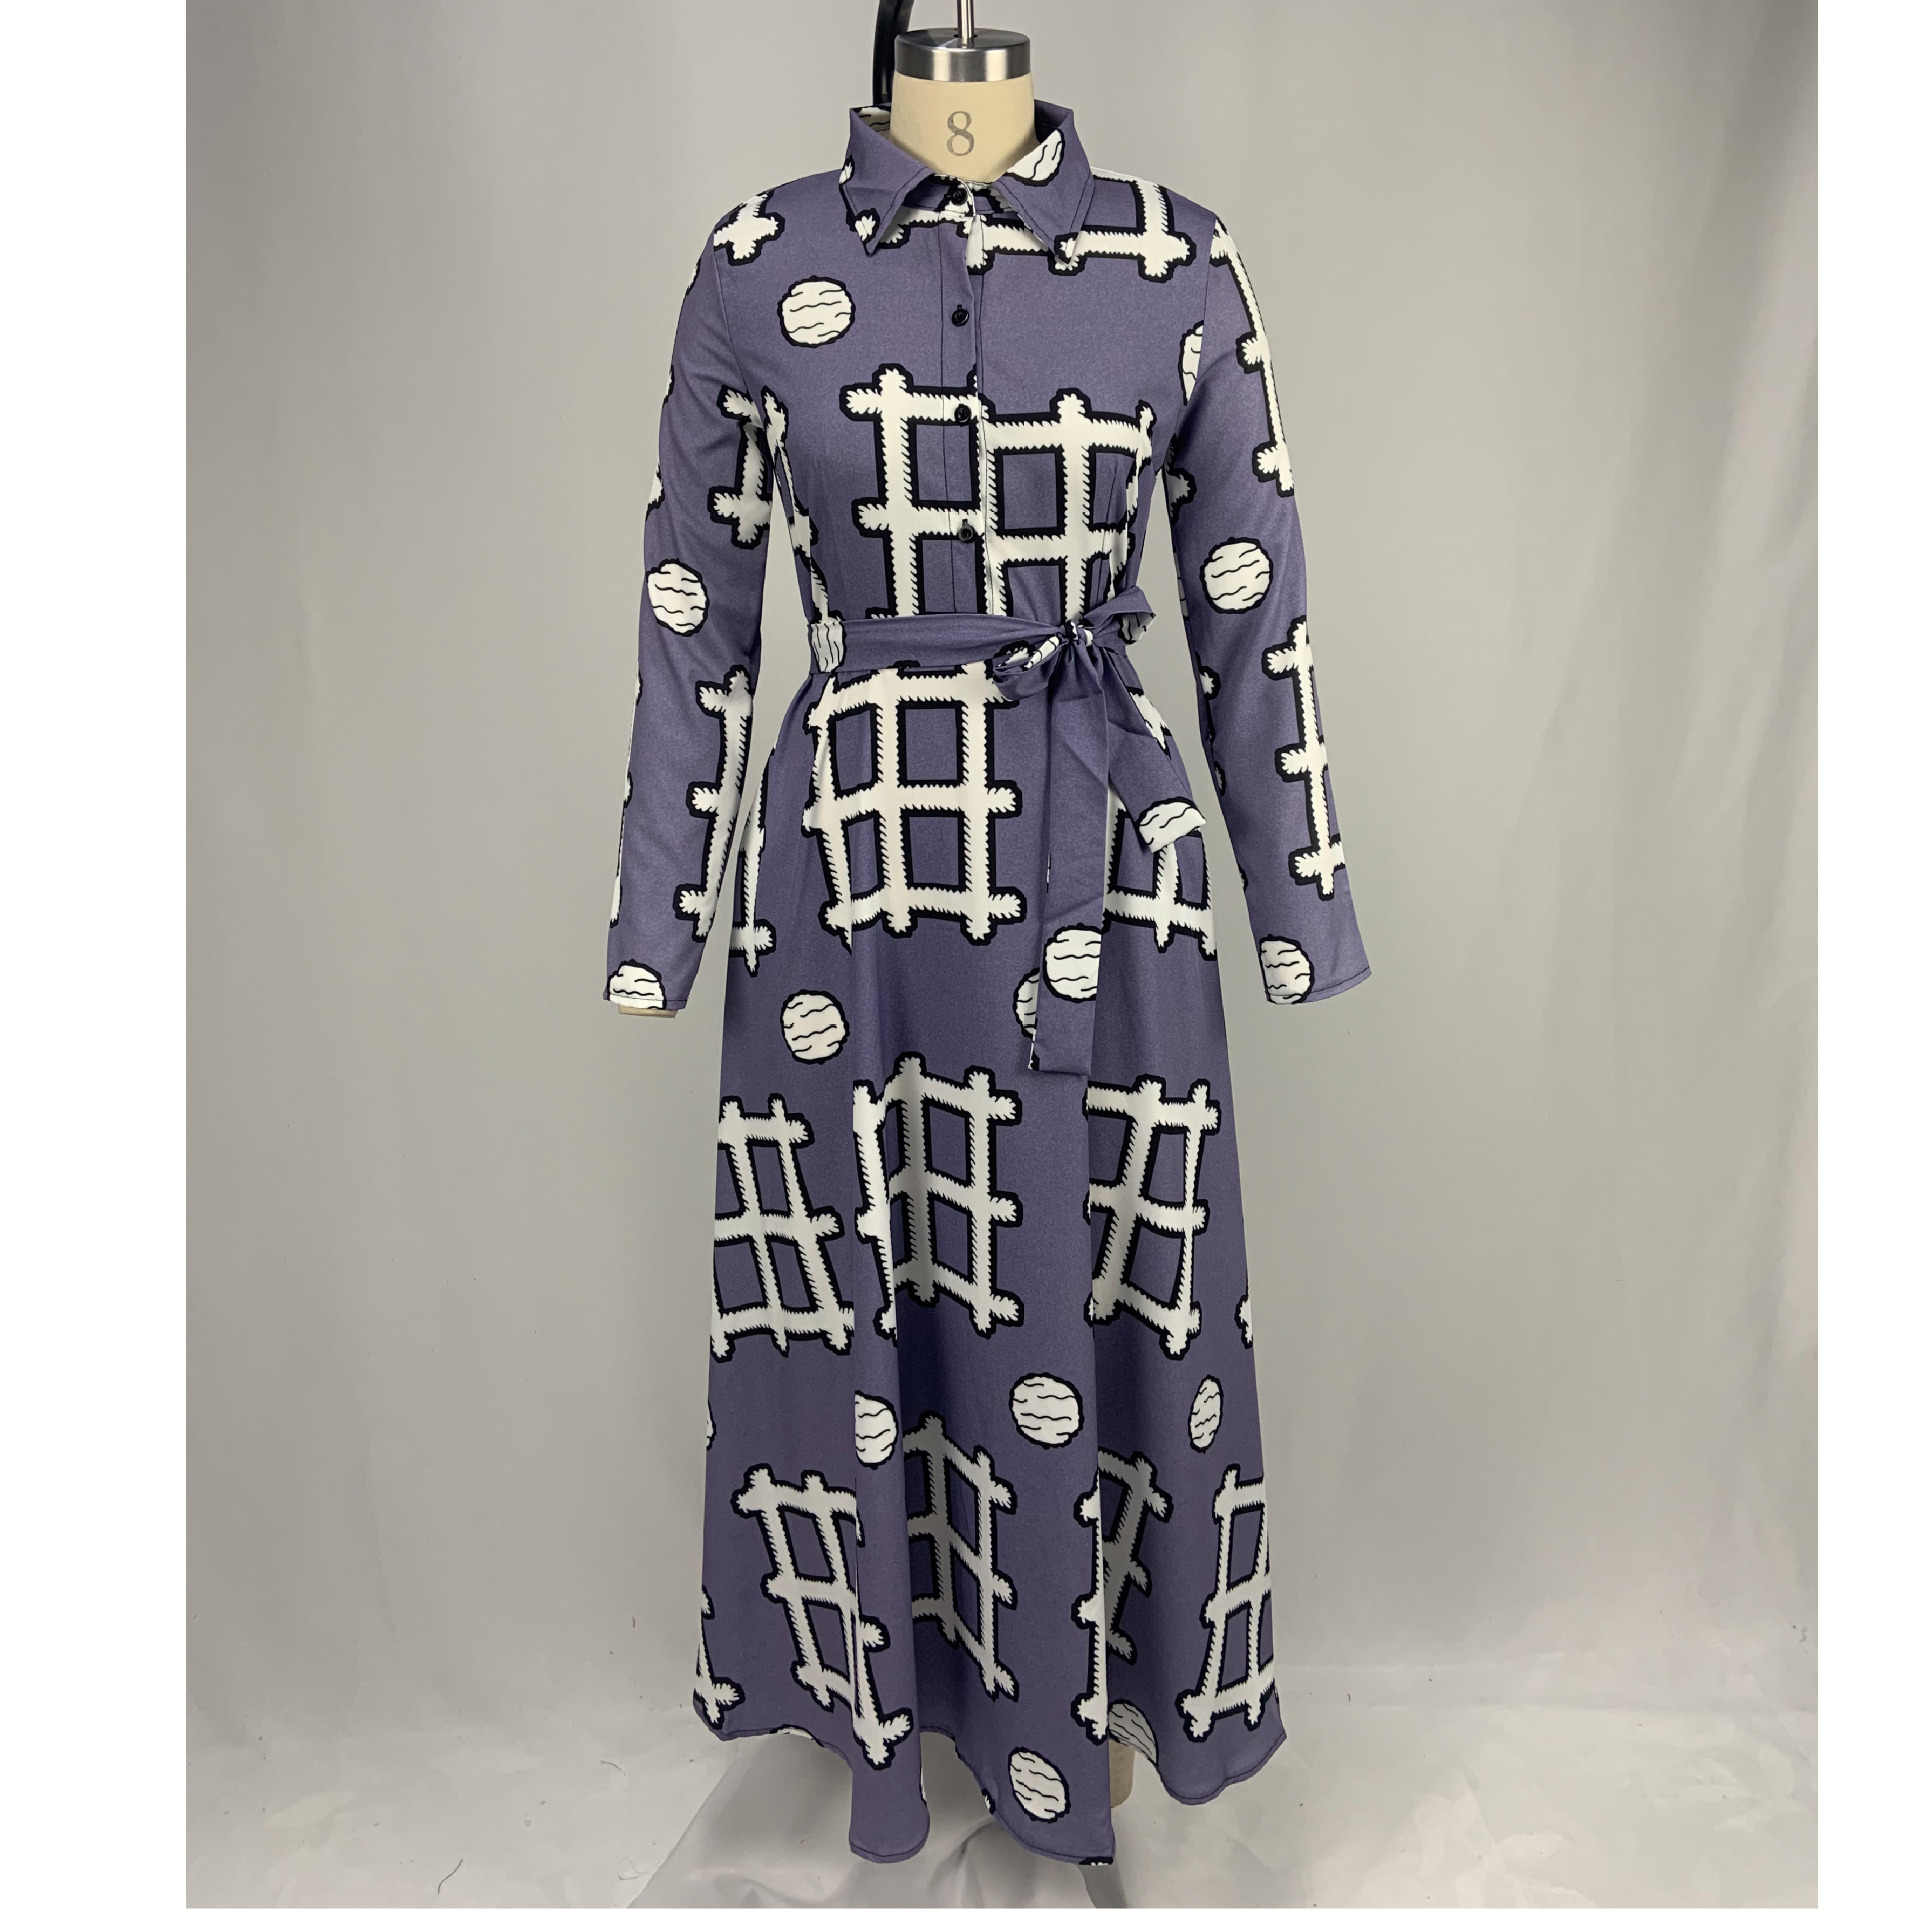 African Dresses For Women 2020 Dashiki Long Maxi Dress Bazin Riche African Clothing Long Sleeve Dresses Africa Clothes